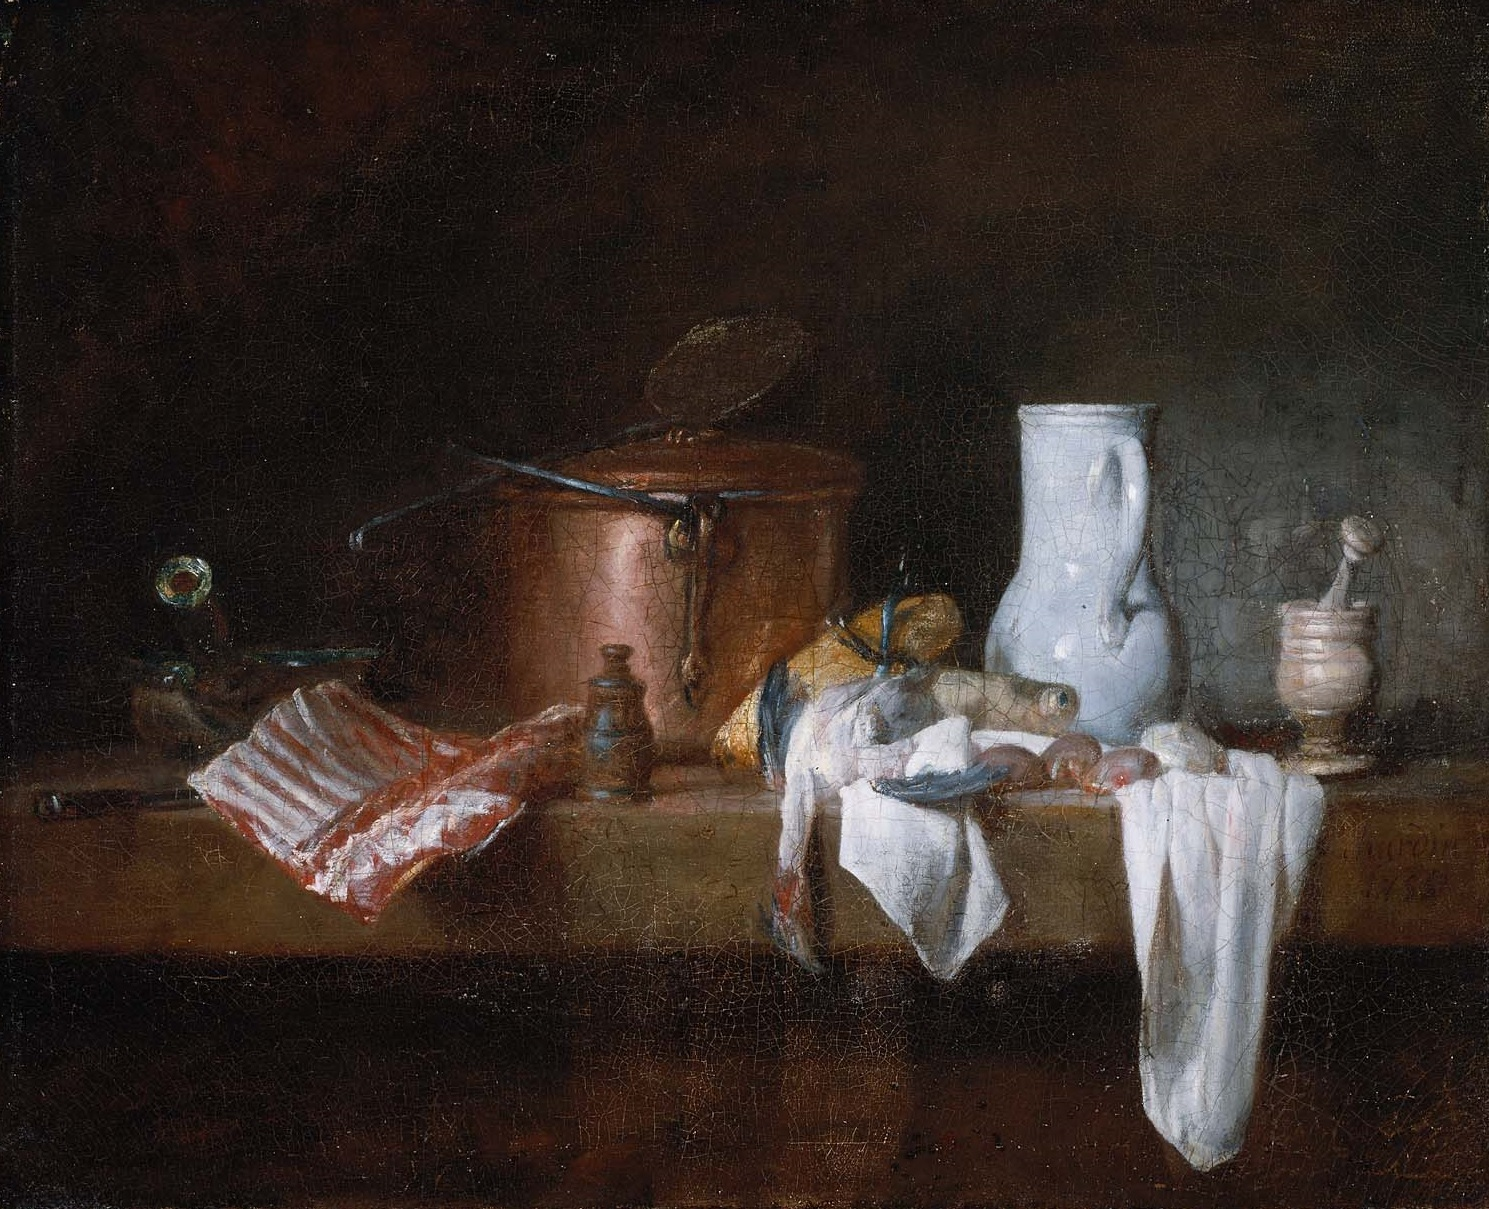 chardin 1756 la_table_de cuisine museum of Fine Arts, Boston